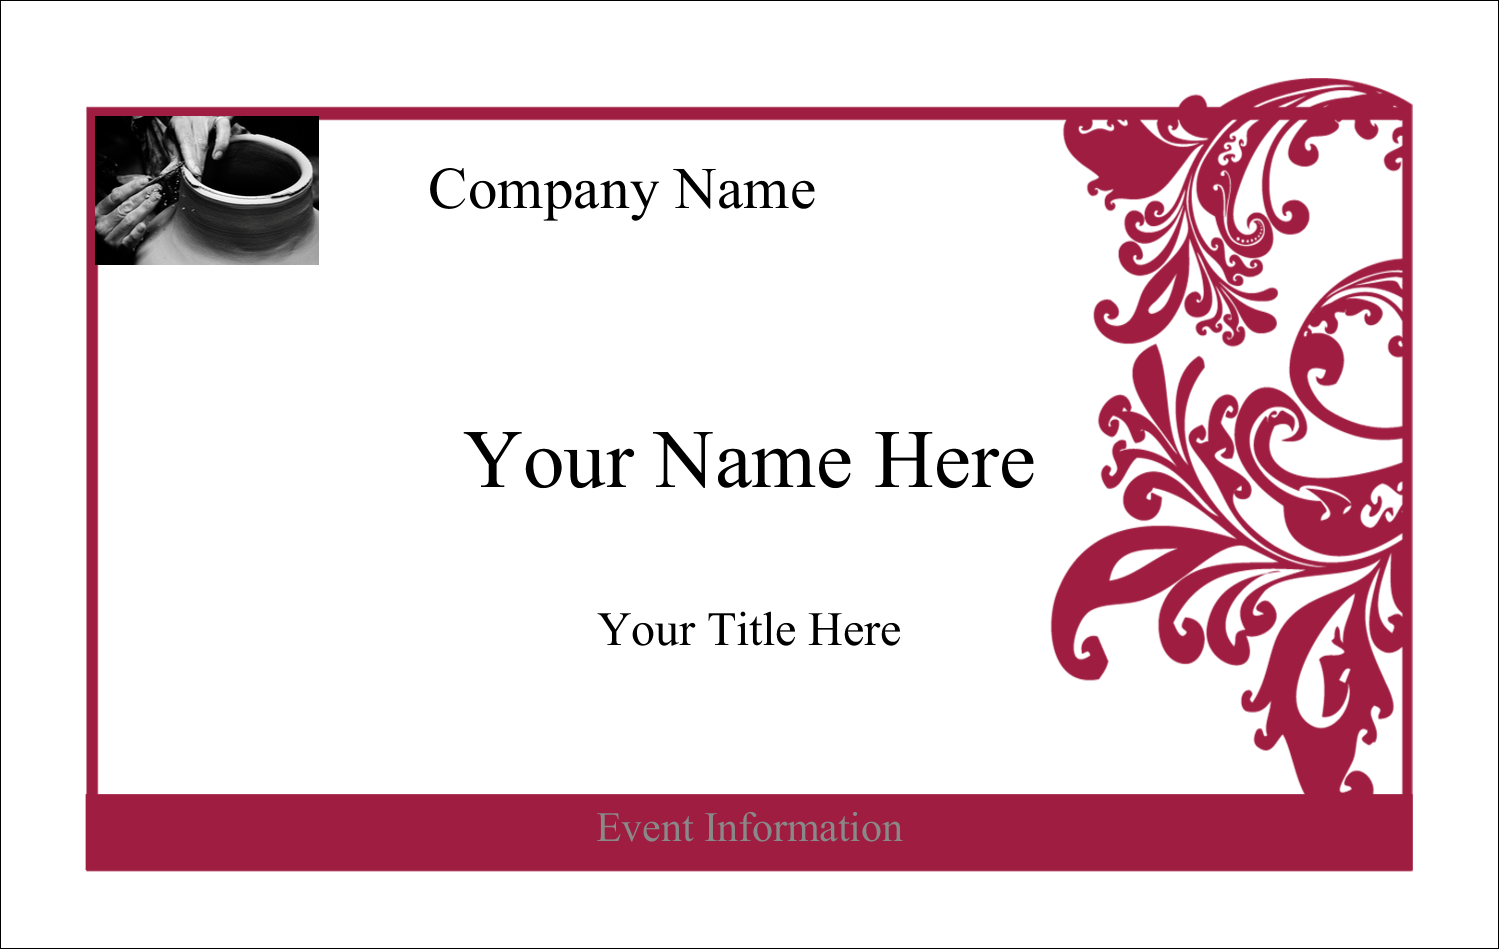 Embellish your next romantic or upscale event with this Black and Red Art template.